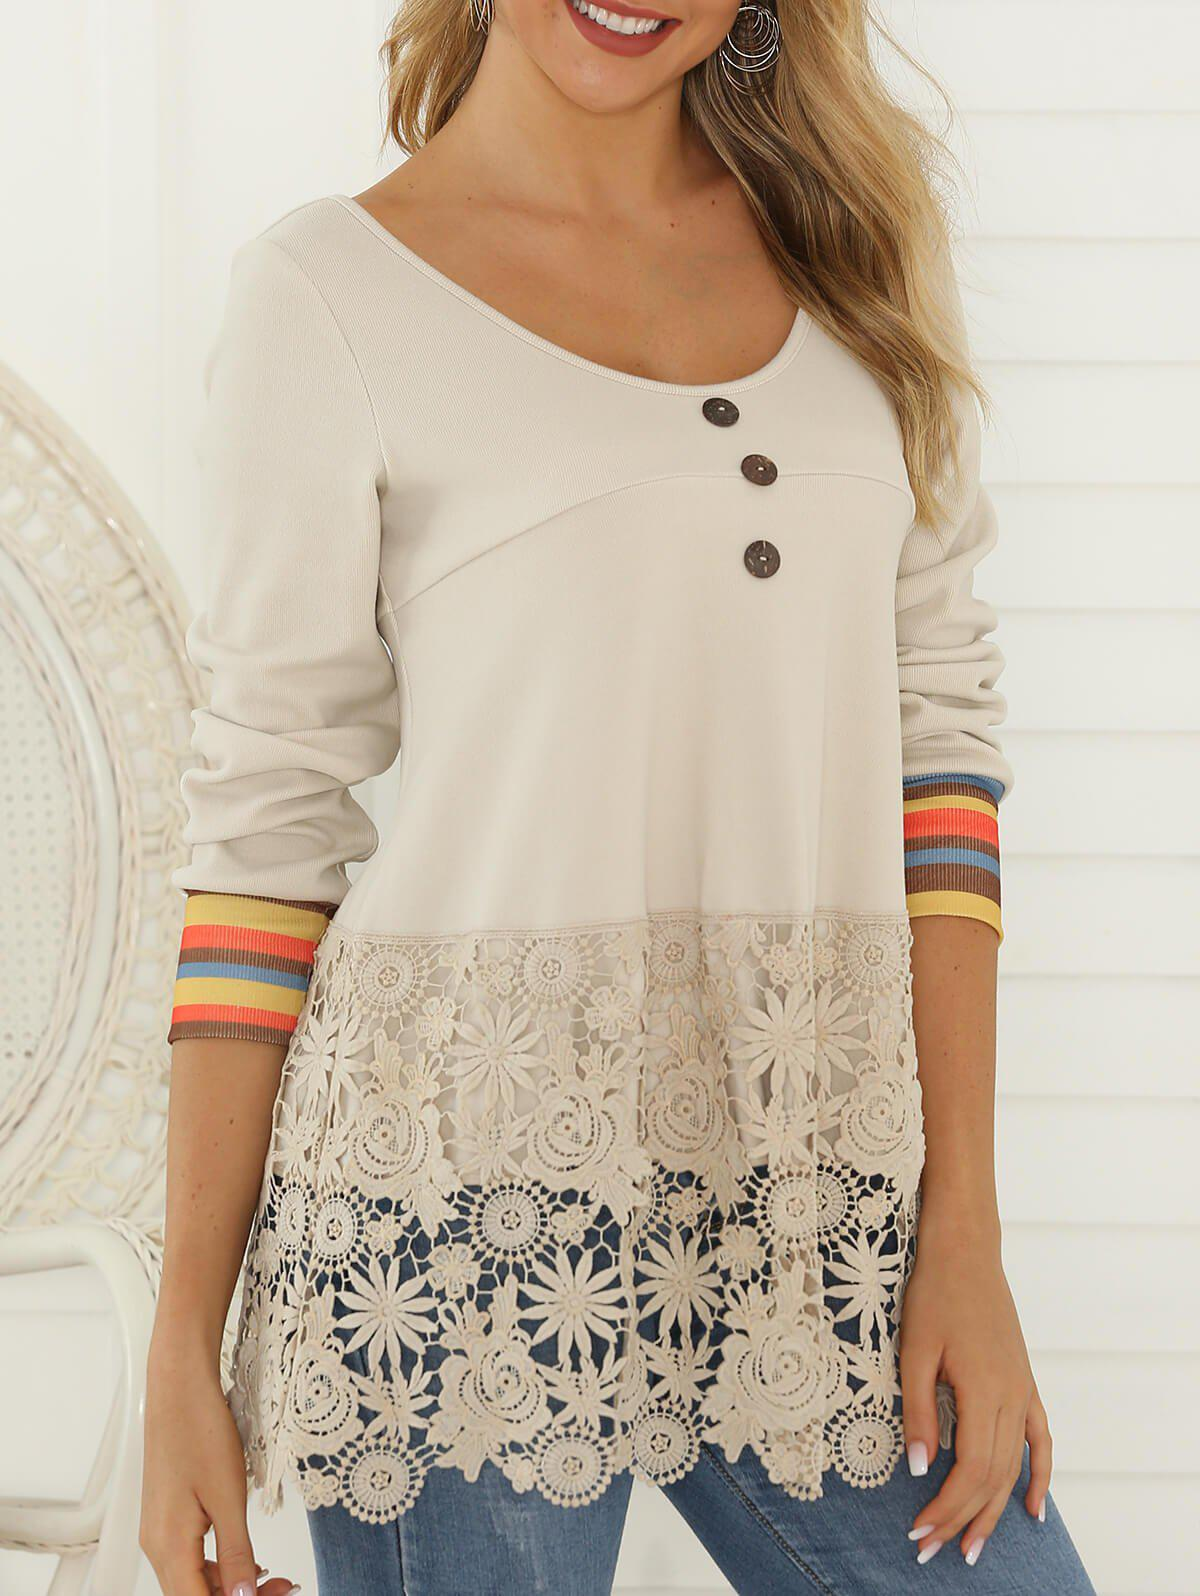 Flower Lace Panel Striped Mock Button T-shirt - CRYSTAL CREAM S